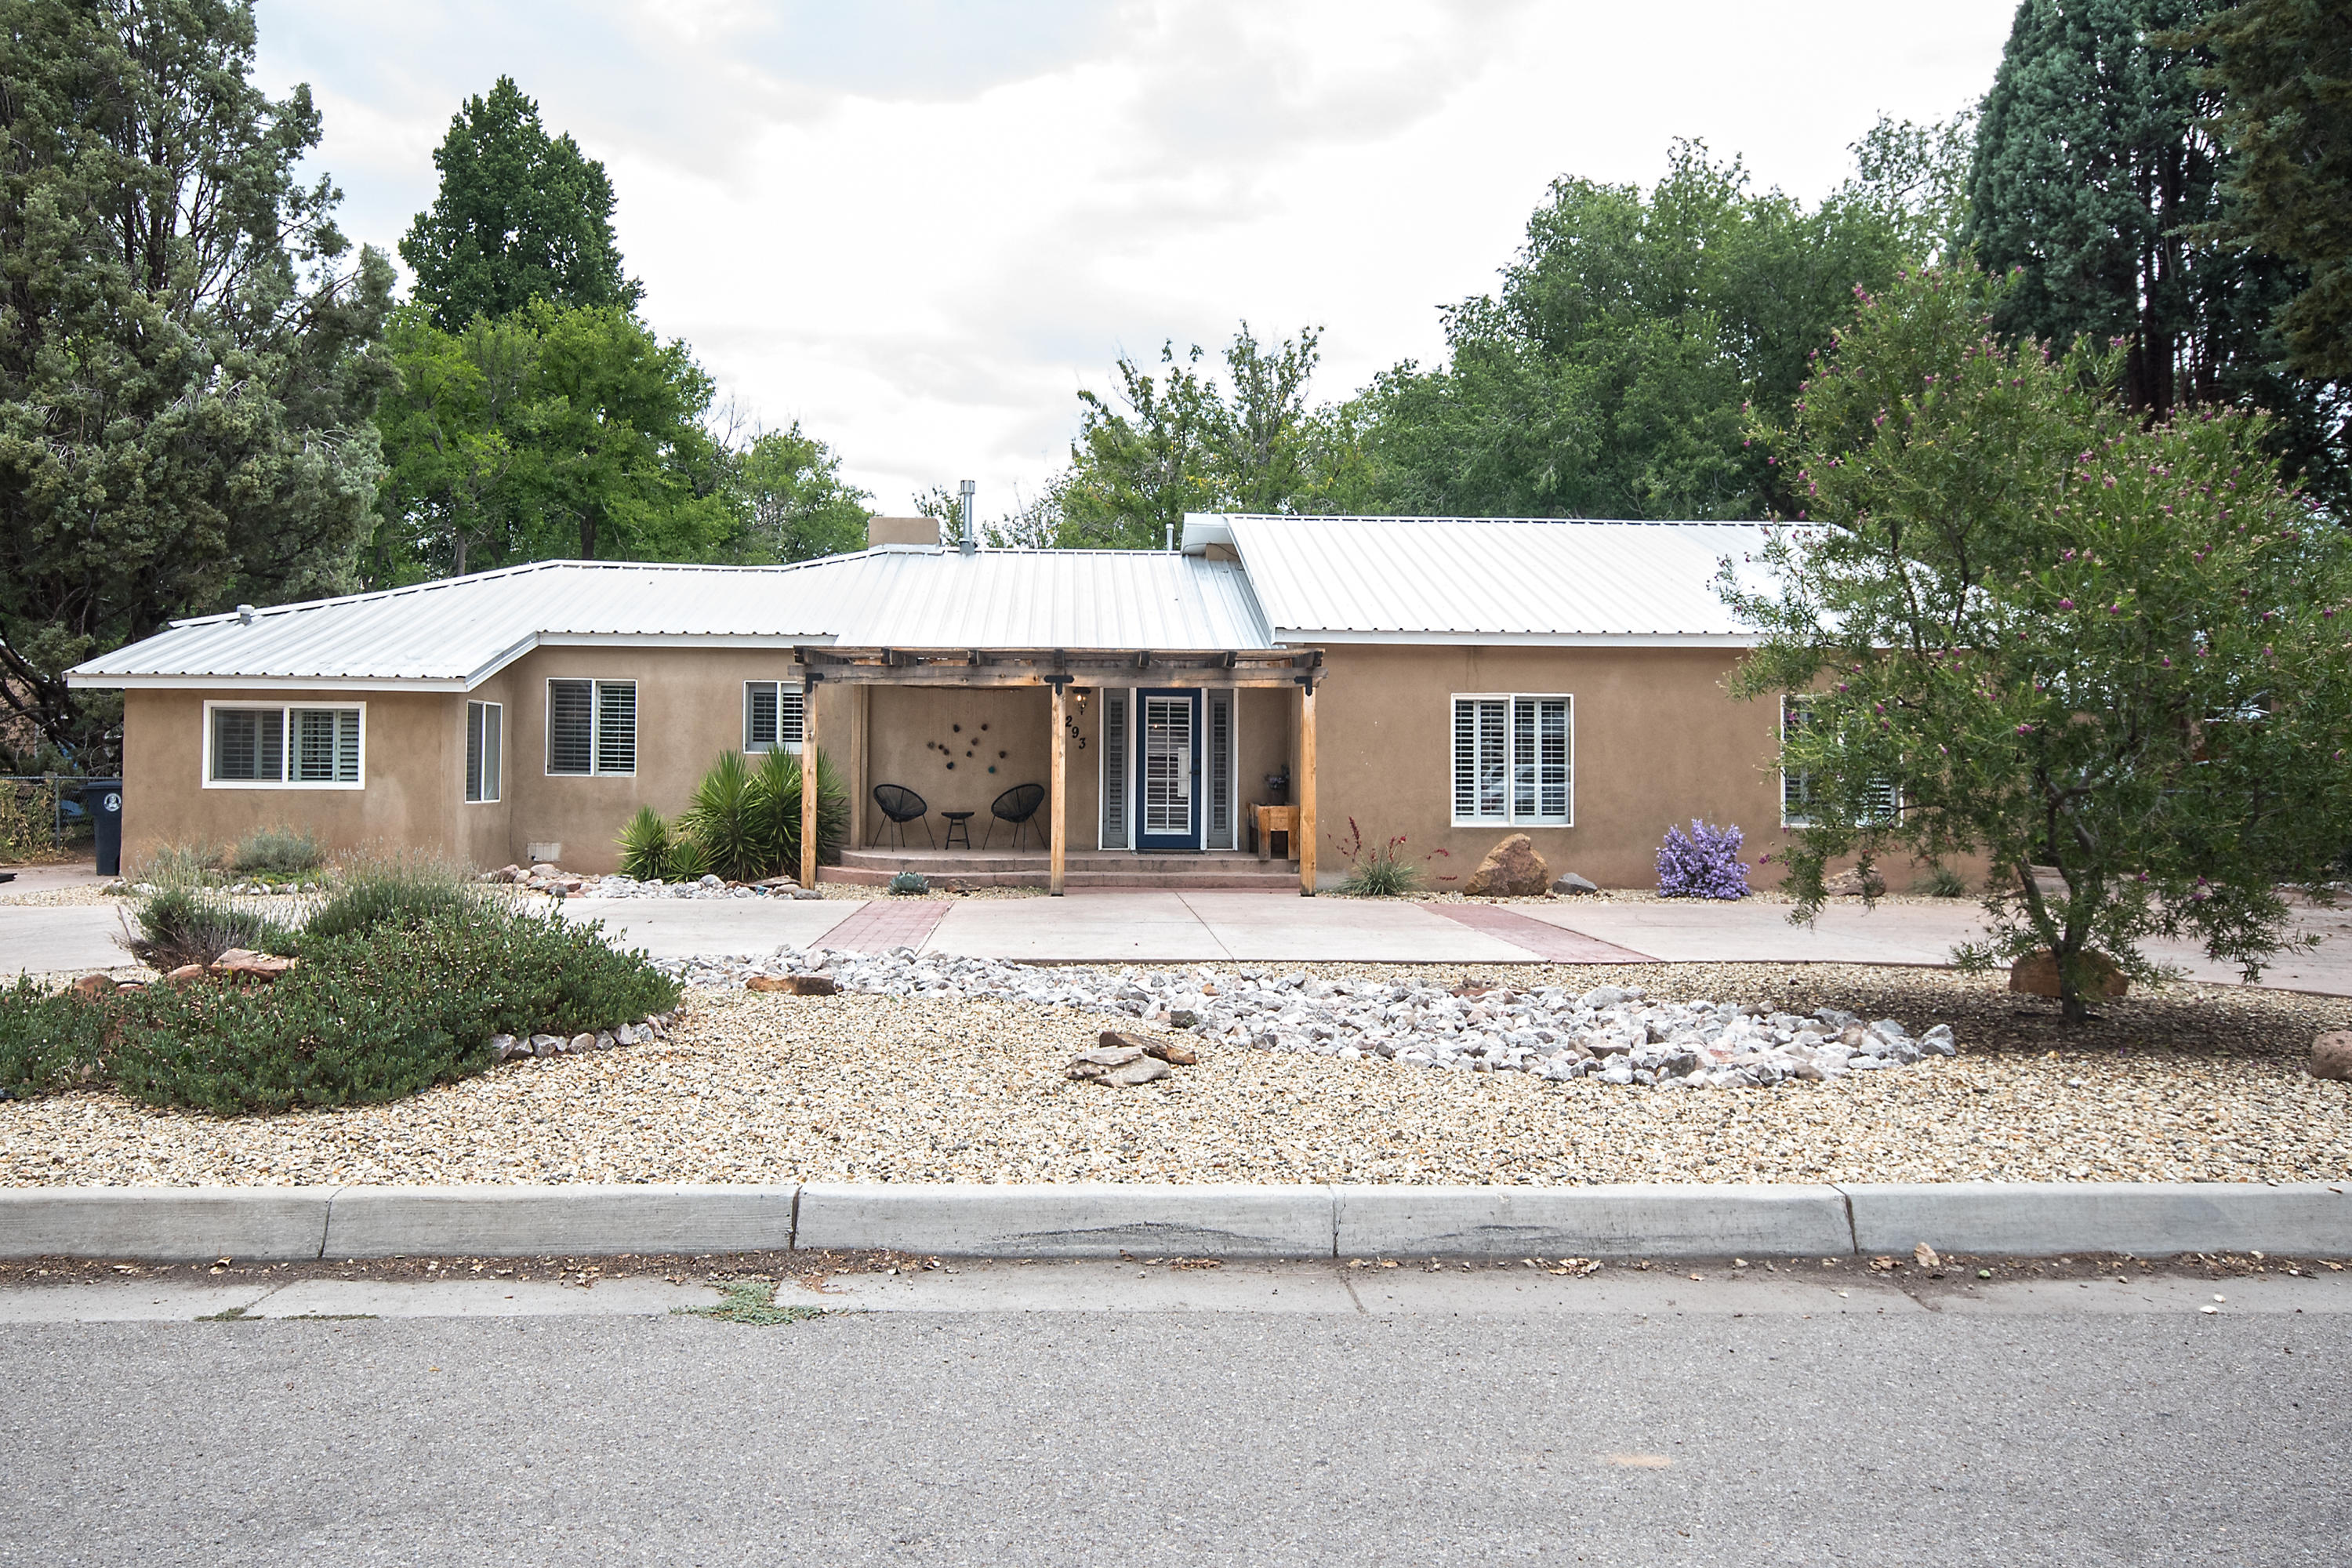 North Valley Treasure located in a quiet, well established neighborhood! Beautiful tree lined street. Natural lighting welcomes you into this 3/4 bedroom  /3 bath home! Chef's dream kitchen; quarts countertops and stainless steel appliances; enjoy the large island whether it be for a small family gathering, or for entertaining a larger audience... With the large island and custom feel, It will not disappoint!! Seller kept the beautiful original wood floors. Don't let this one slip through your hands. Truly Country living at it's best while enjoying the close proximity of shopping and restaurants.